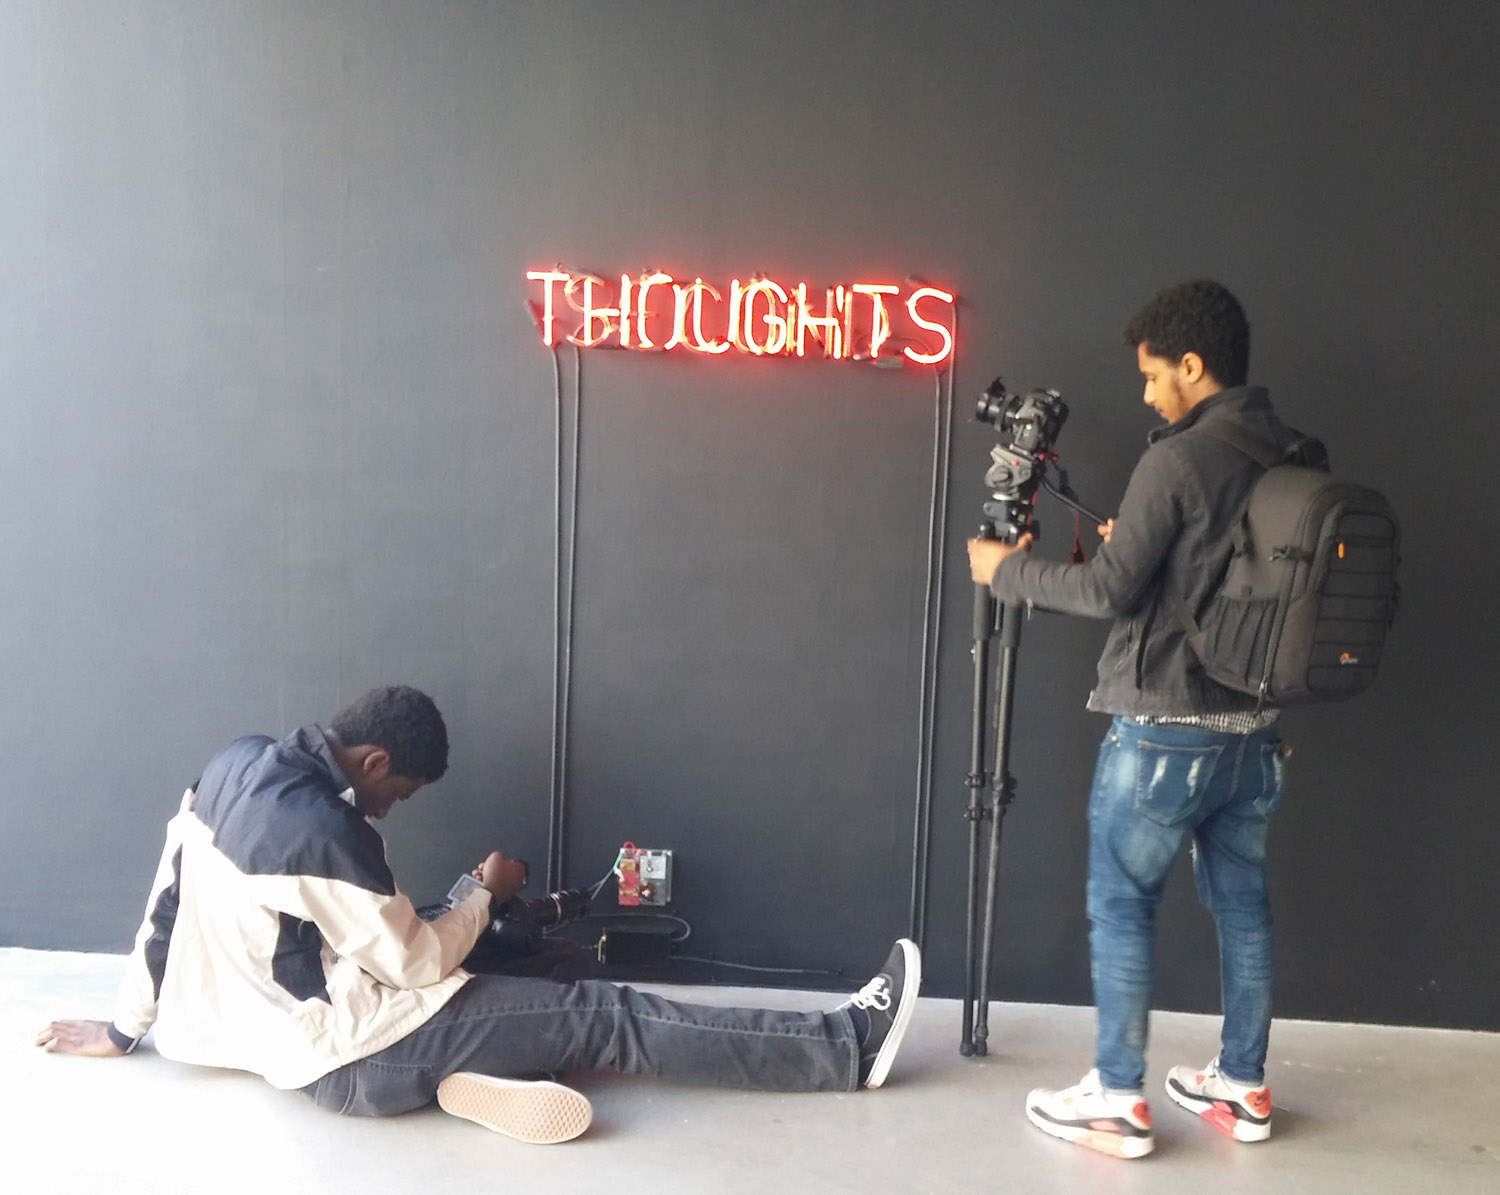 Victor Ilunga (left) and Birehanu Bishaw (right) filming Angie Keefer's Second Thoughts, 2017